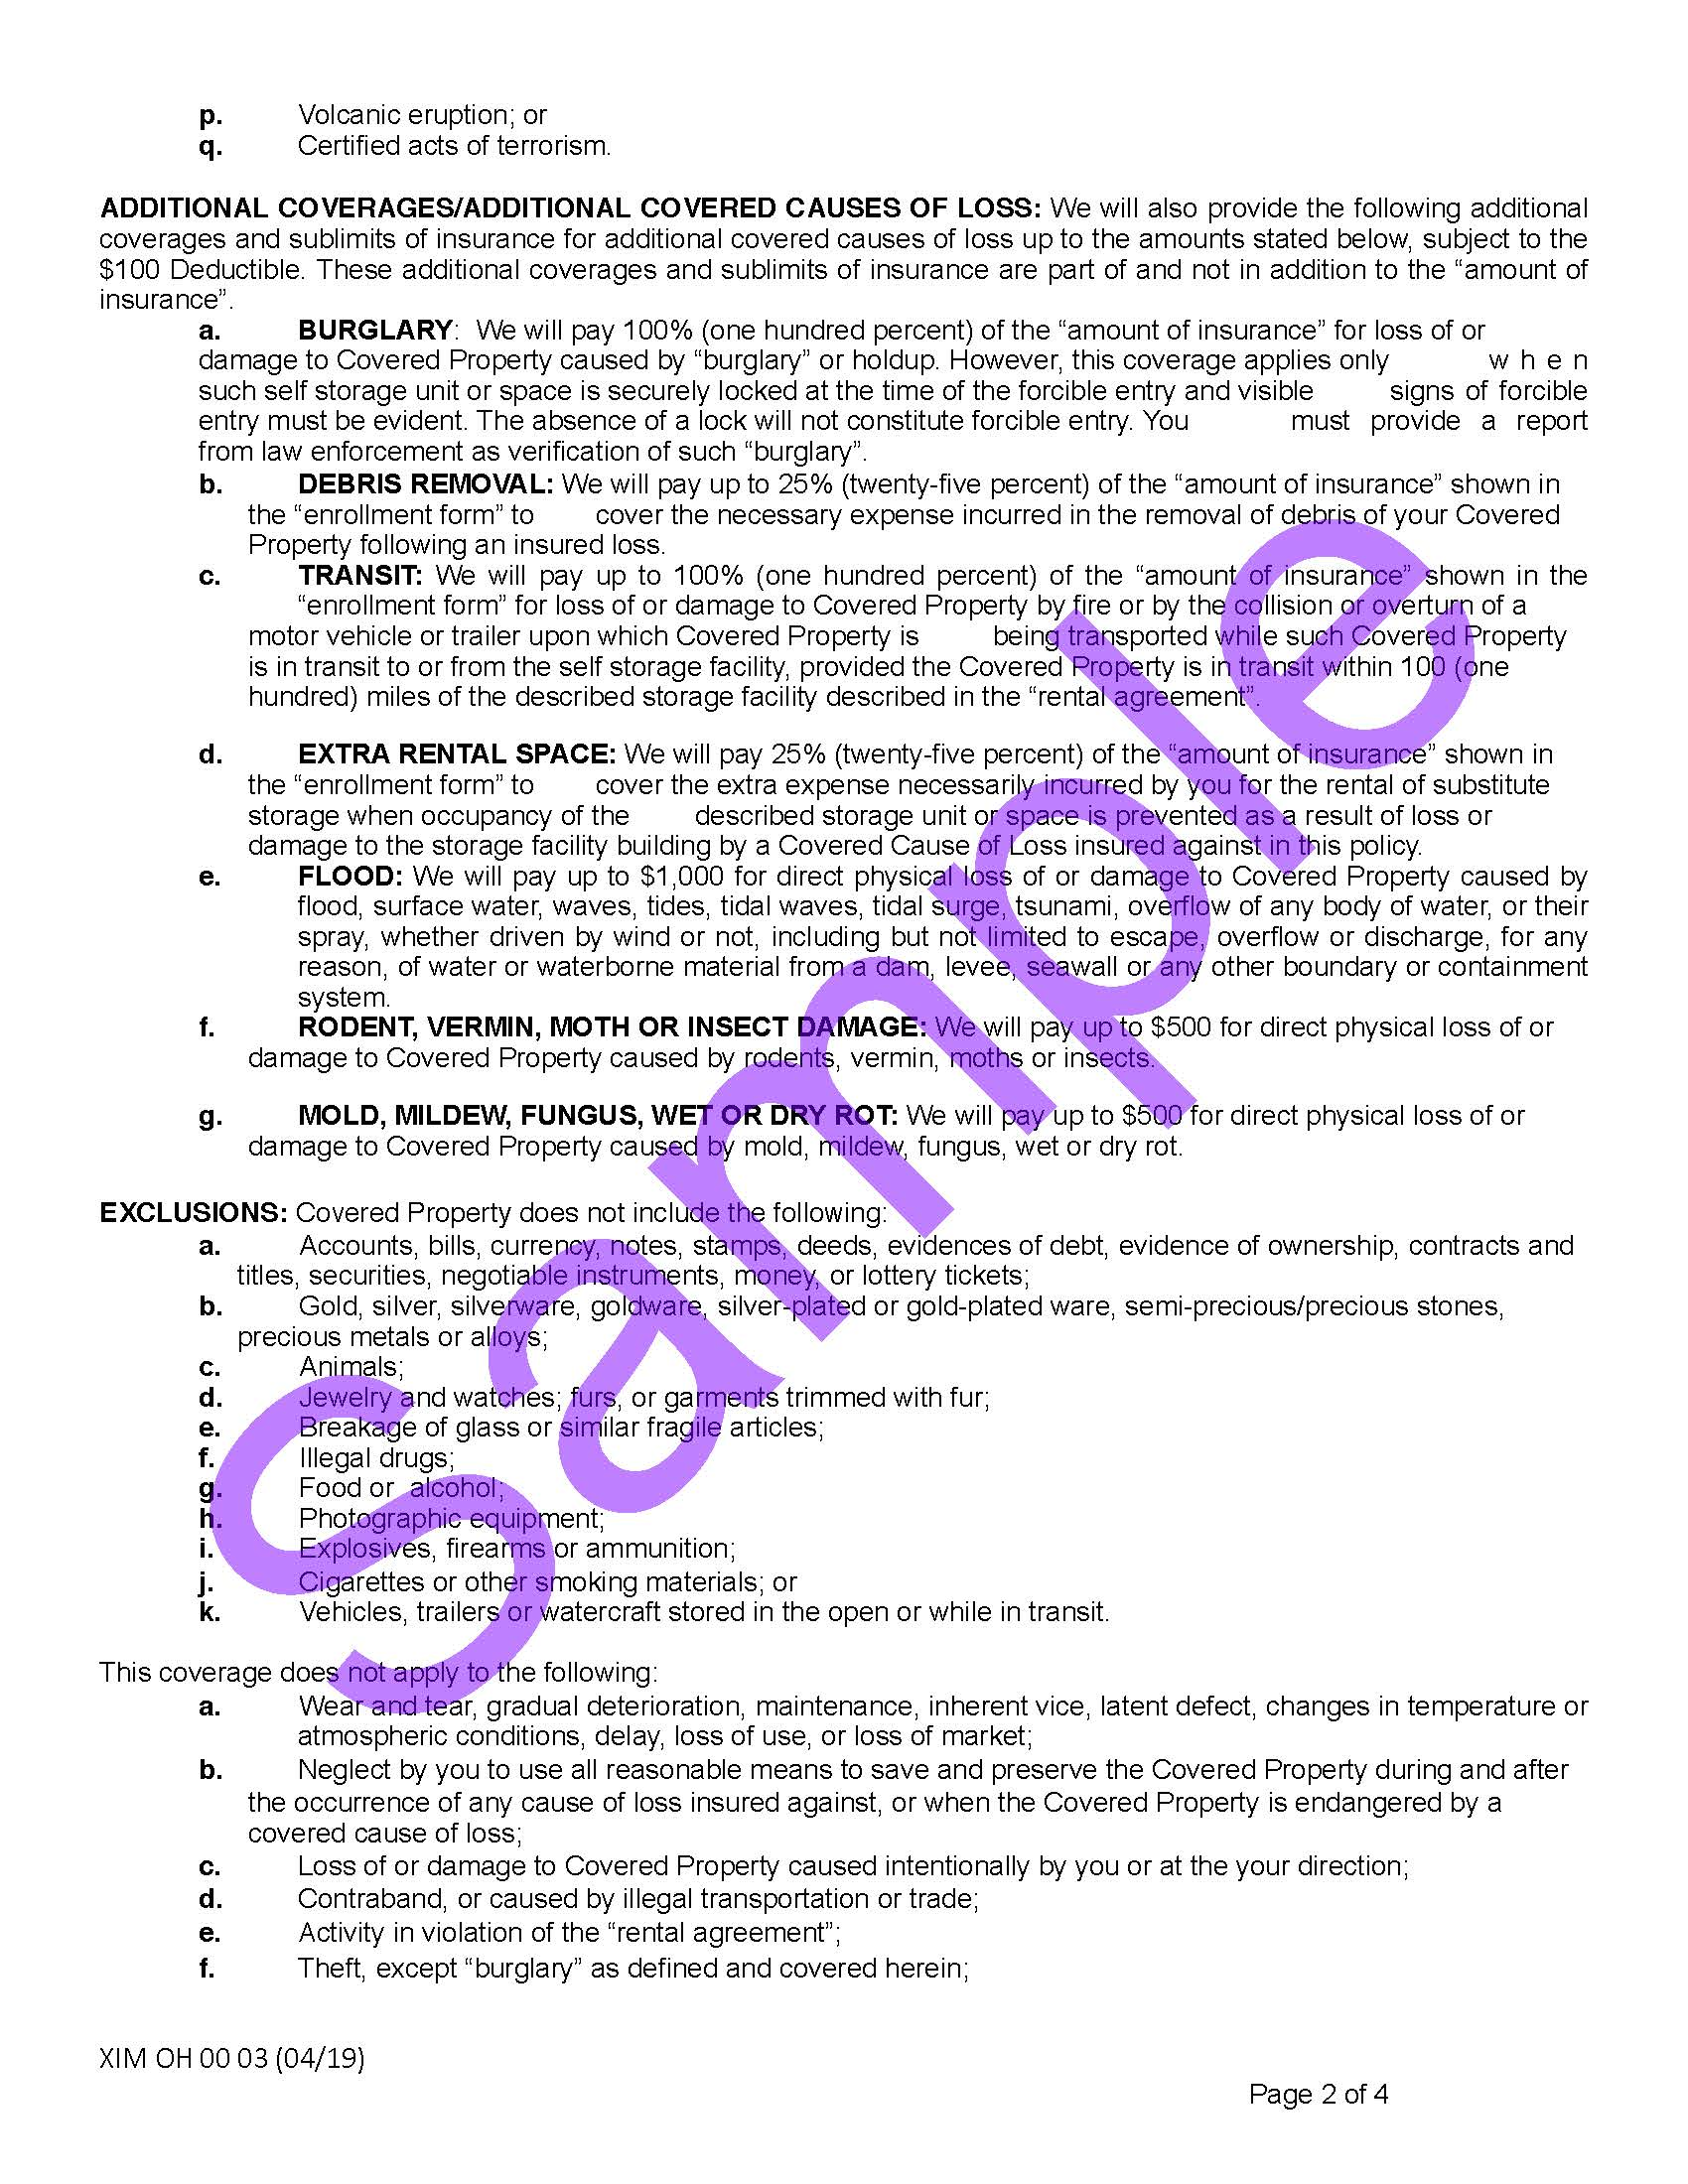 XIM OH 00 03 04 19 Ohio Certificate of InsuranceSample_Page_2.jpg